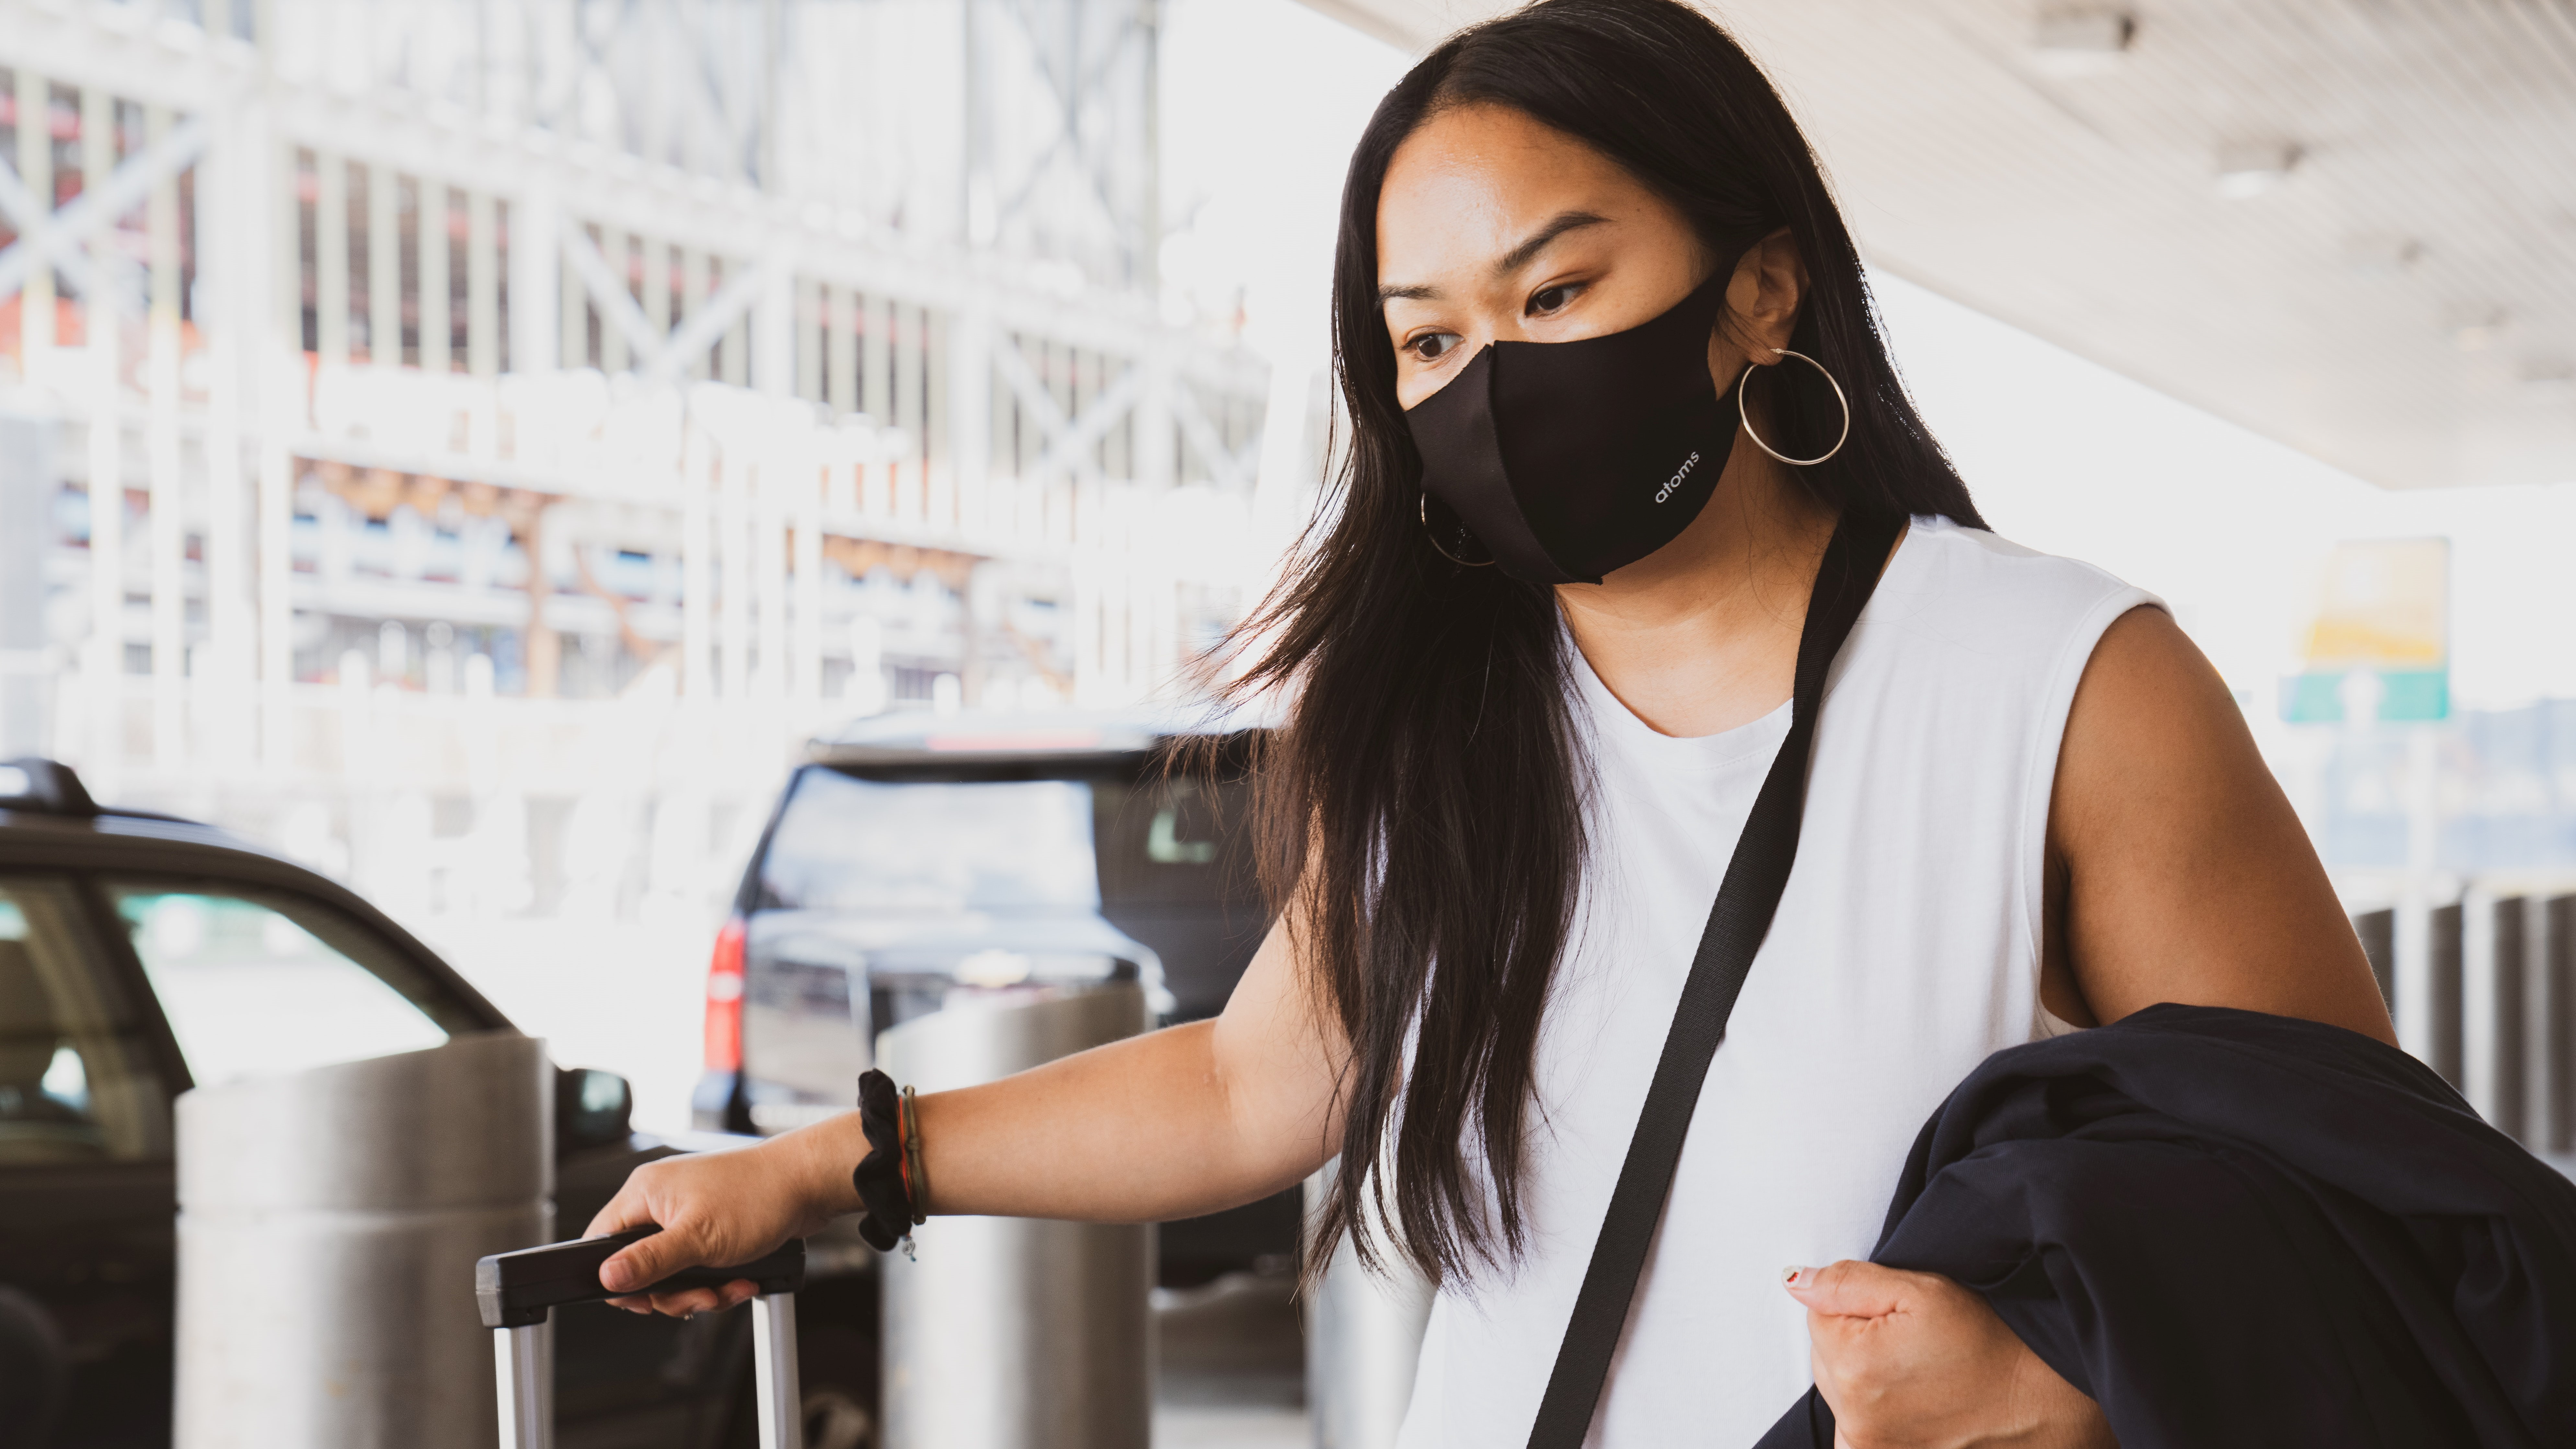 asq quarantine thailand mask hotel travel